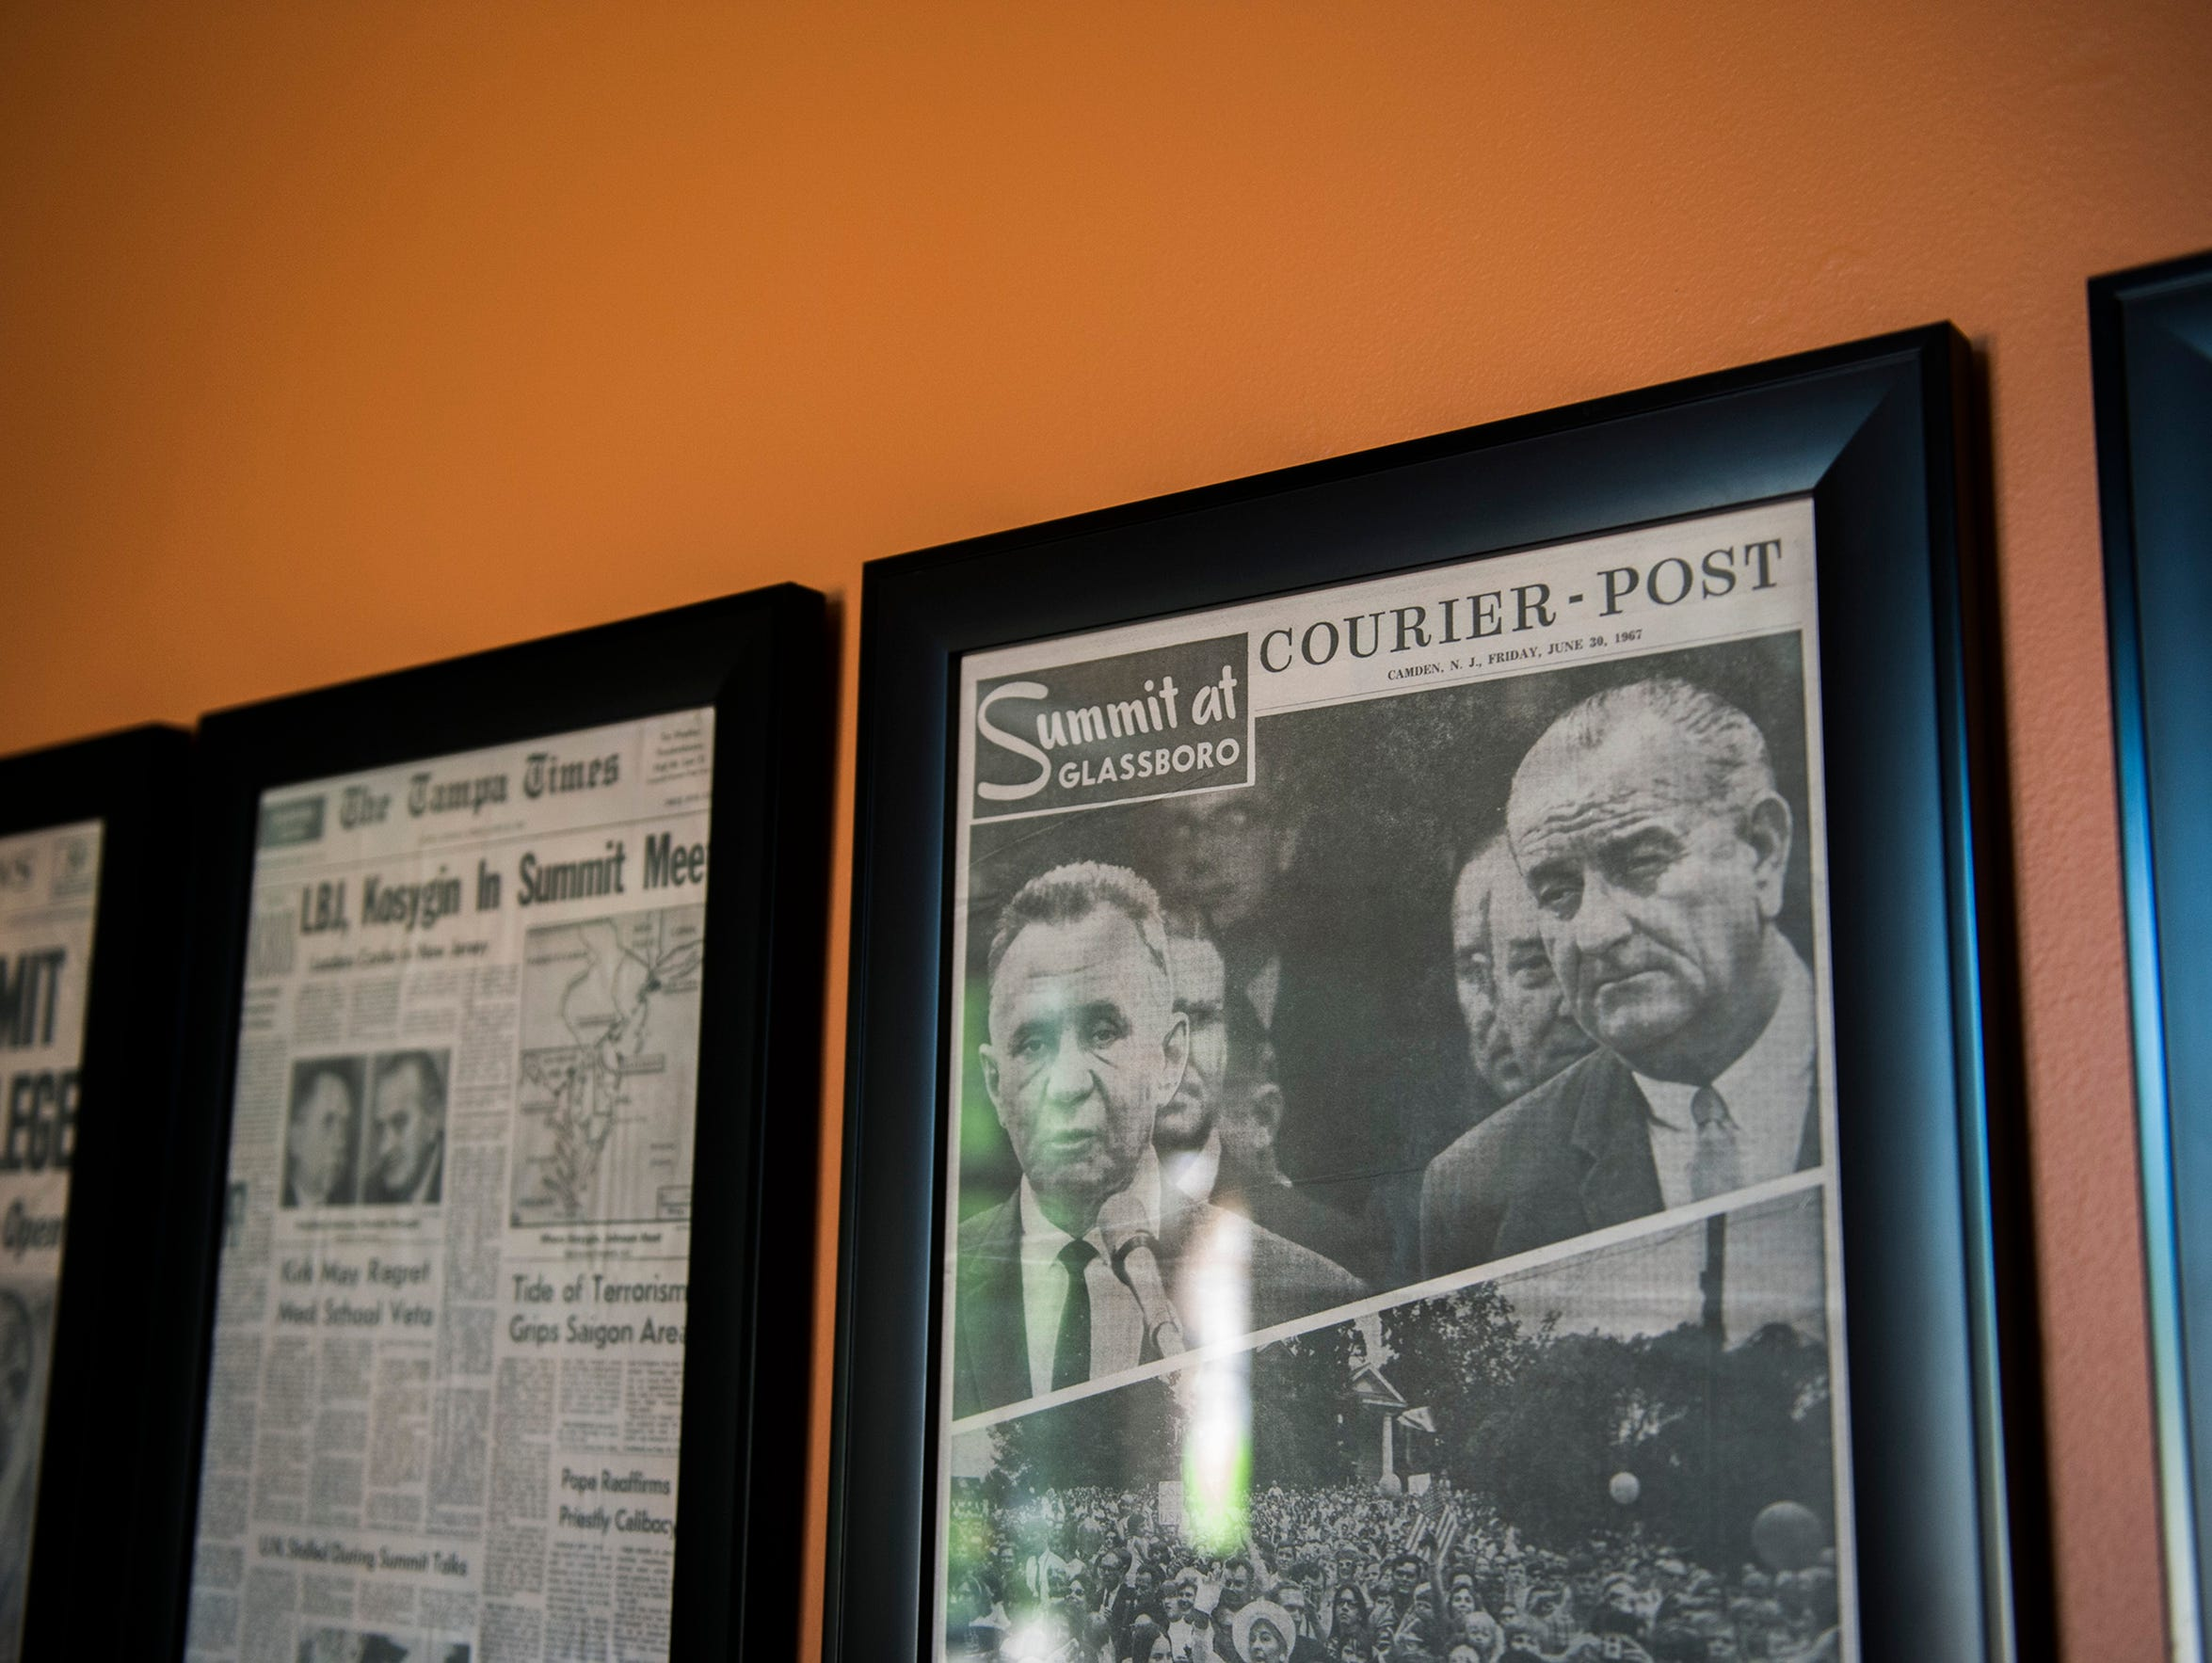 An issue of the Courier-Post's coverage of the Johnson-Kosygin